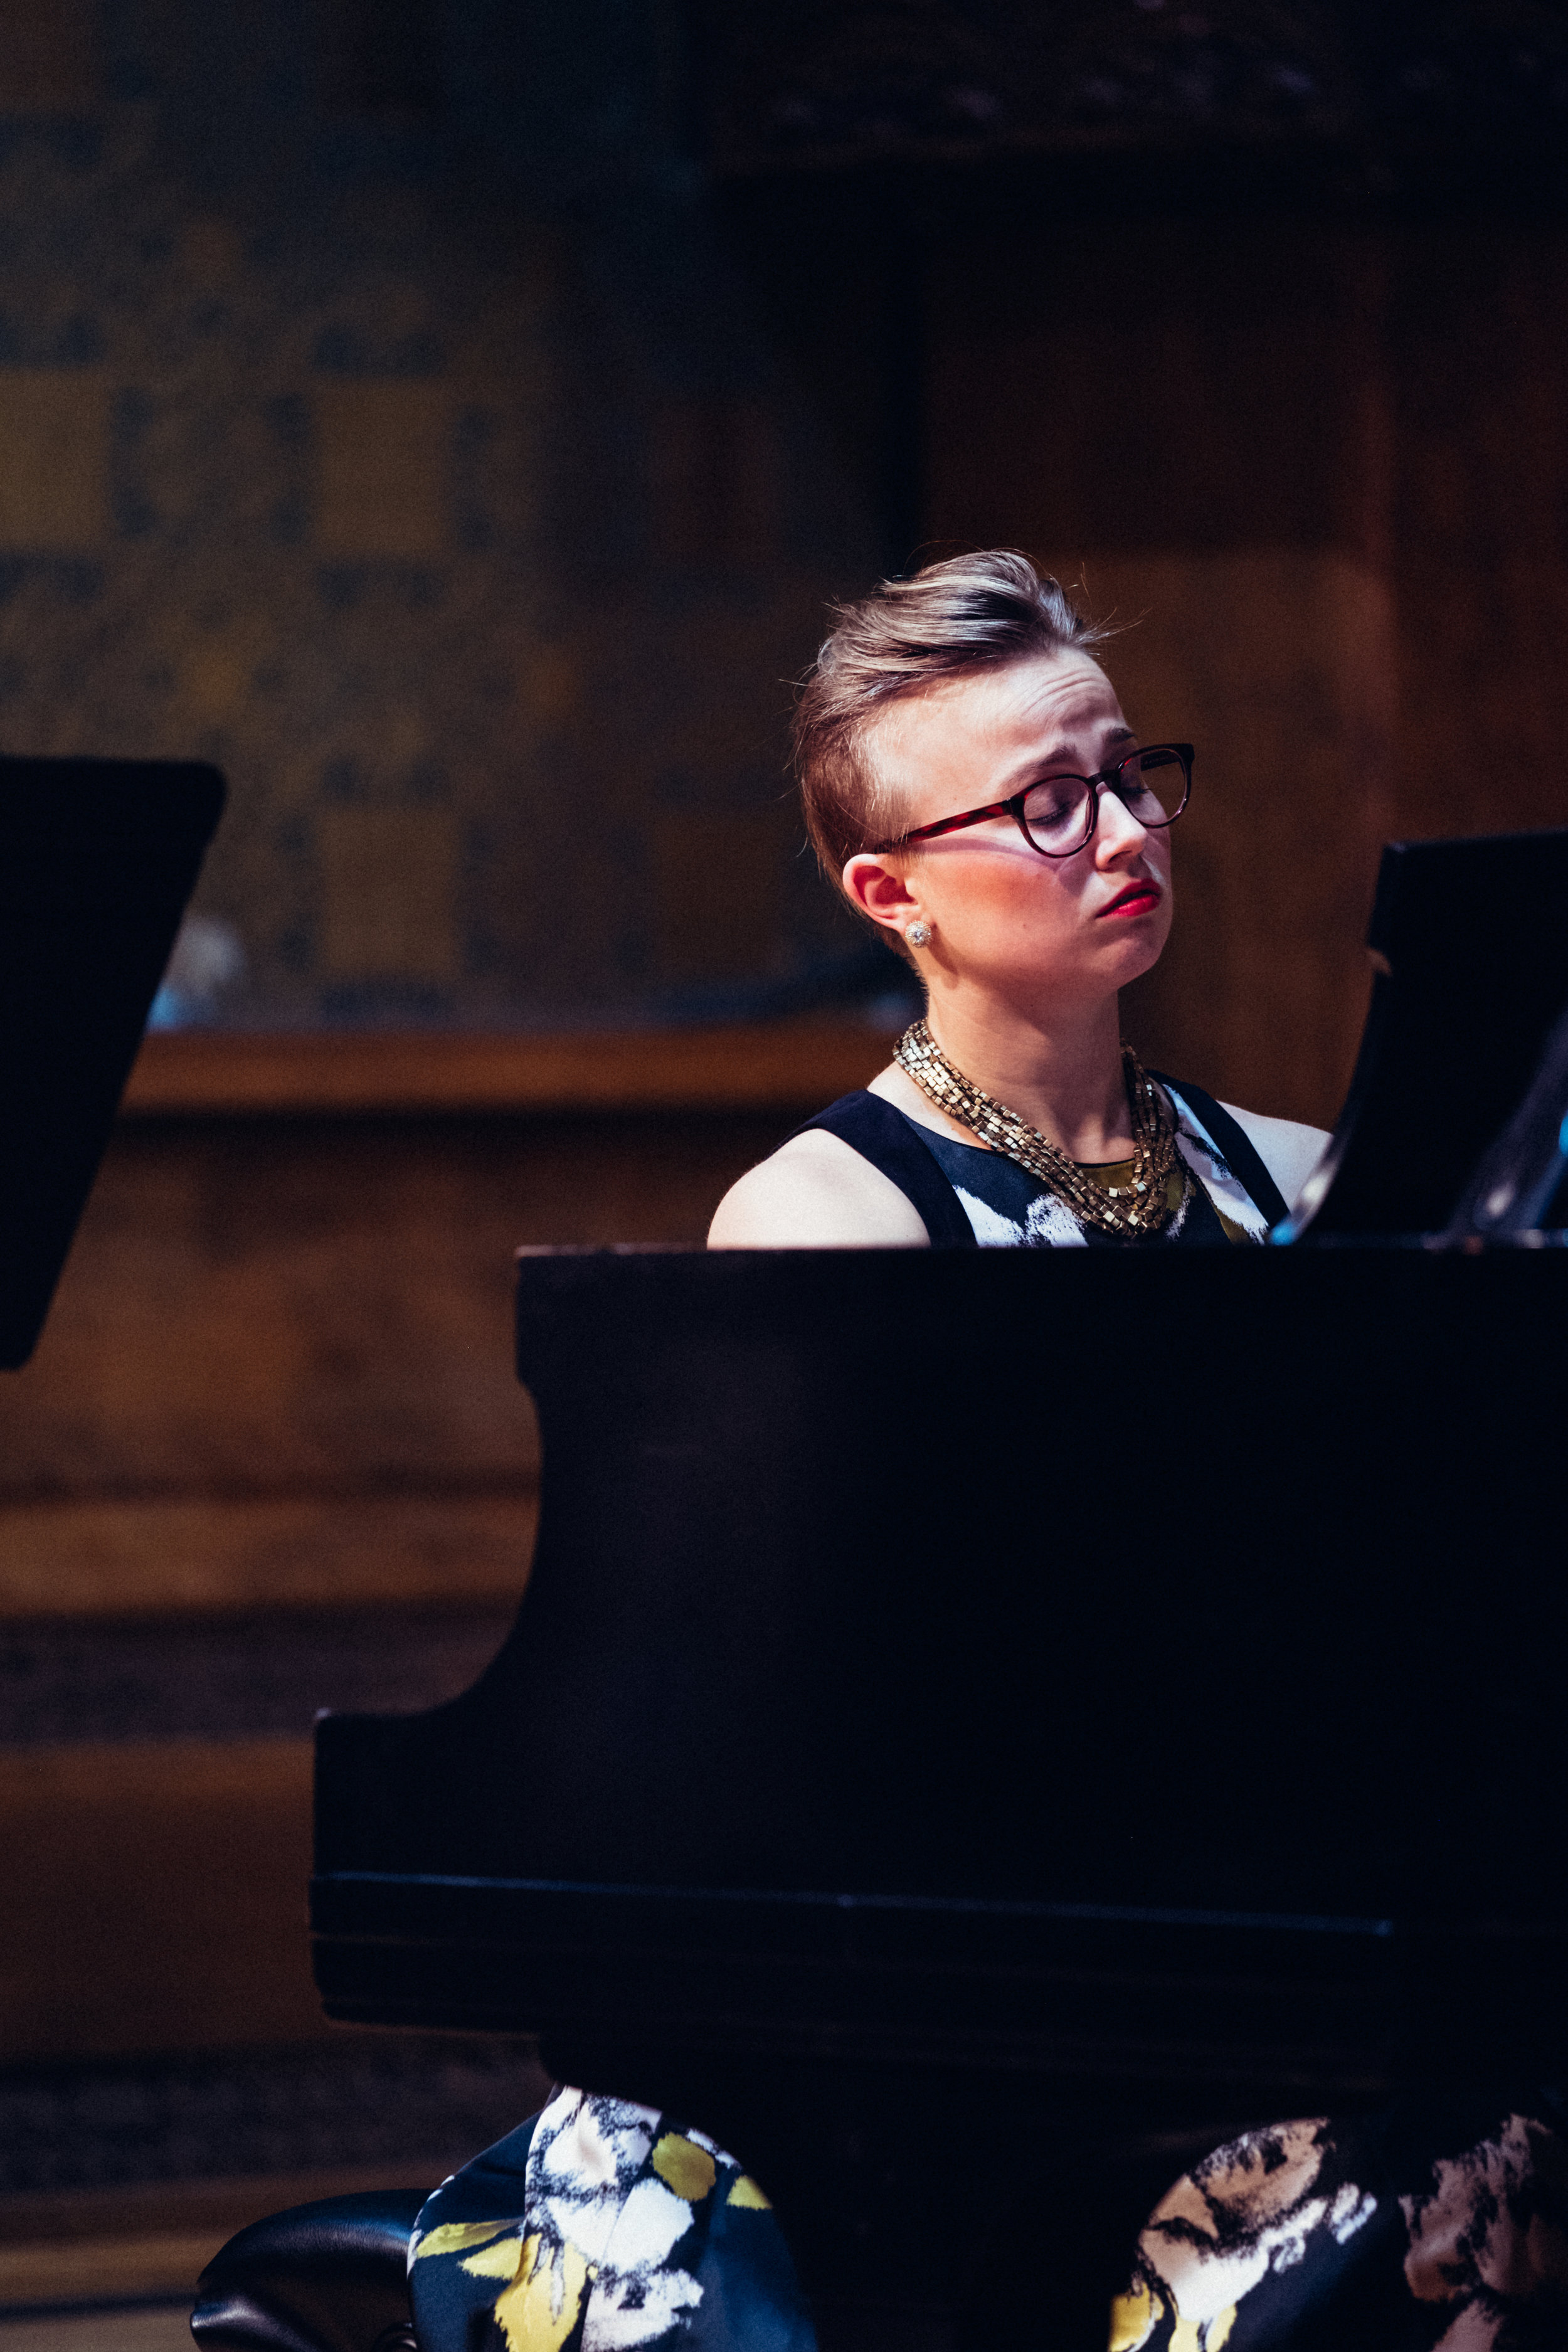 """Entrepreneur, activist, and musician, Elizabeth Newkirk encompasses thoughtfulness and artistry in all of her work, performances, and collaborations. She is the co-founding pianist of Bow & Hammer, her primary ensemble in which she serves as the Artistic Director. With Bow & Hammer, she explores her passion for duo repertoire of the early 20th century, while balancing it with new and standard works. Extremely inspired by the slow-food movement, she is dedicated to creating concerts that can mirror the thoughtfulness and thoroughness of the food movement, furthermore creating a relevancy for new audiences, meaningful experiences, and a camaraderie among other disciplines. """"IndustryNight"""" and """"Élevé ,"""" are just two examples of presentations by Bow & Hammer that feature a wide range of disciplines, artists, and small businesses in Chicago.  Newkirk is equally versed in duo collaboration with voice. Passionate about art song and opera, she is a collaborative pianist for the vocal department at the Chicago College of the Performing Arts. There, she serves as a staff pianist, vocal coach, and rehearsal pianist for recitals, opera rehearsals, and productions. With Bow & Hammer, other chamber ensembles, and mixed genres, she has premiered new works, performed with mixed media and multiple disciplines, supported new projects, and remains a part of a diverse network that includes traditional institutions as well as new organizations.  Growing up on her family farm in Indiana, Newkirk came to Chicago to pursue studies in Piano Performance. She received her MM from Roosevelt University with a minor in Collaborative Piano where she studied with Ludmila Lazar, Dana Brown and Angela Yoffe. Receiving her BA from Columbia College, she studied under pianist/composer Sebastian Huydts and jazz with Dennis Luxion. Additionally, she has had the privilege to work with Mary Sauer, Winston Choi, Cliff Colnot, and Sylvia Wang. Newkirk currently is on faculty at Columbia College Chicago. When"""